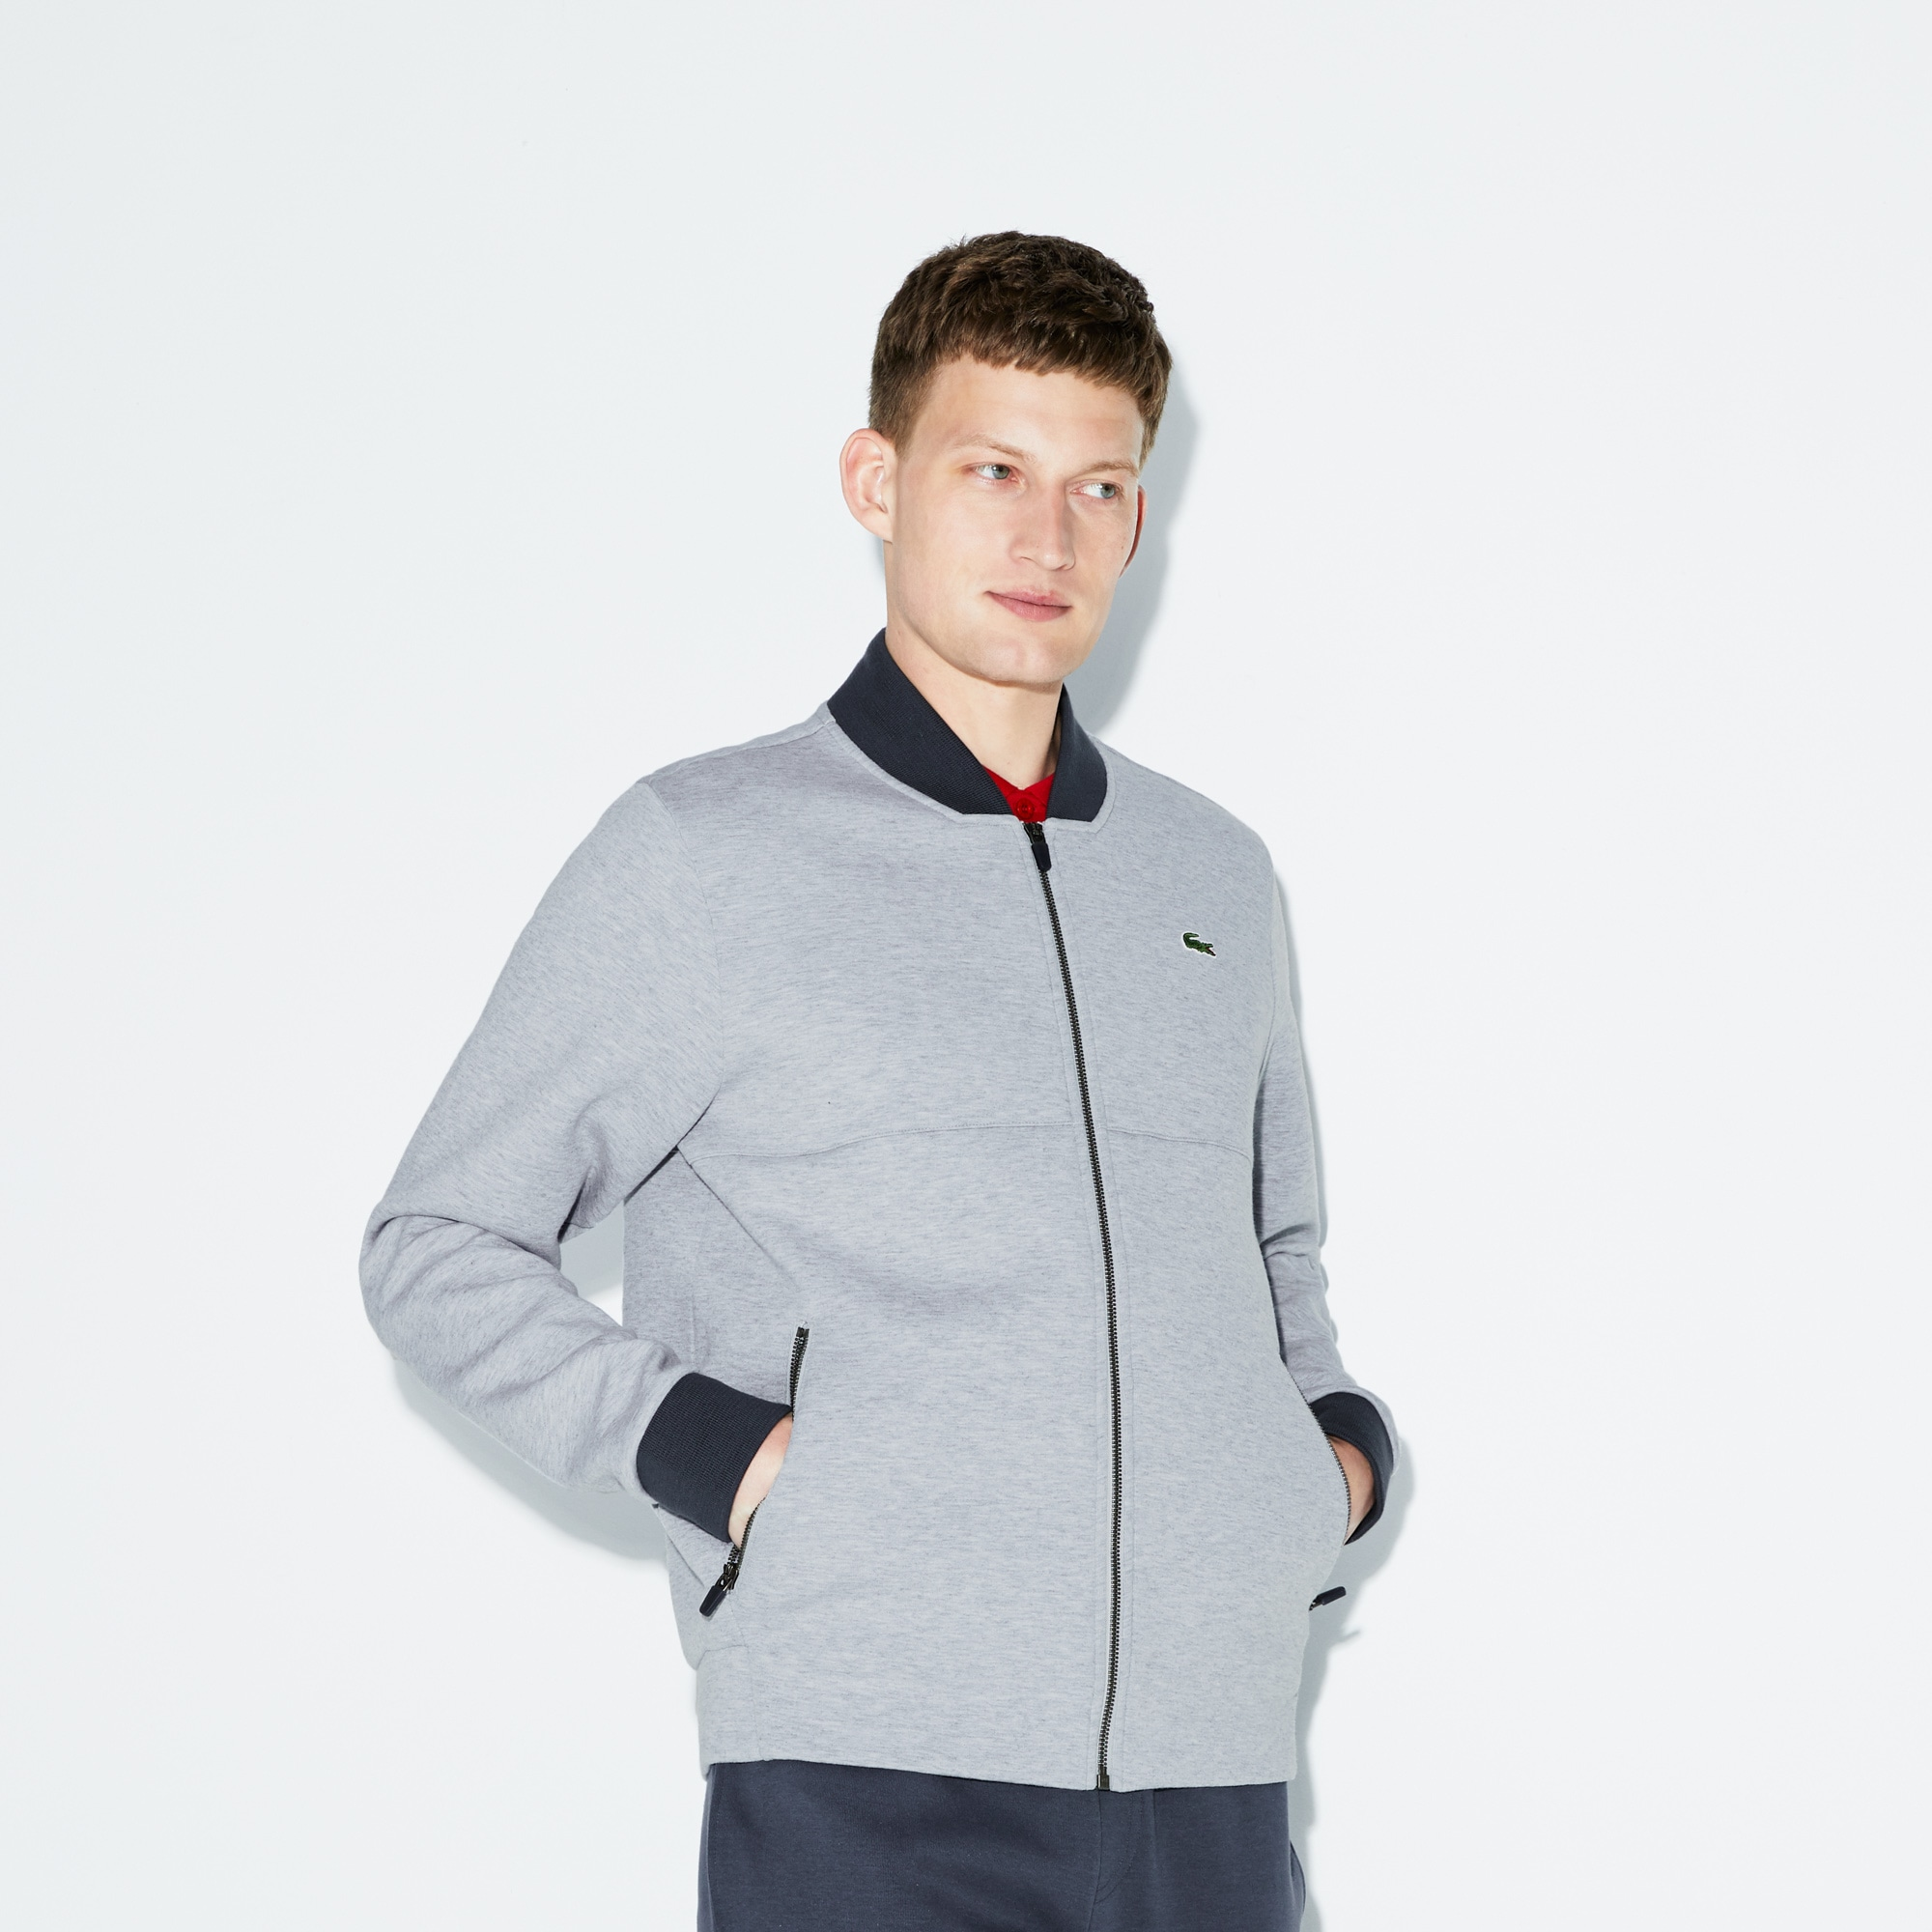 Men's Lacoste SPORT Banana Neck Zippered Fleece Tennis Sweatshirt